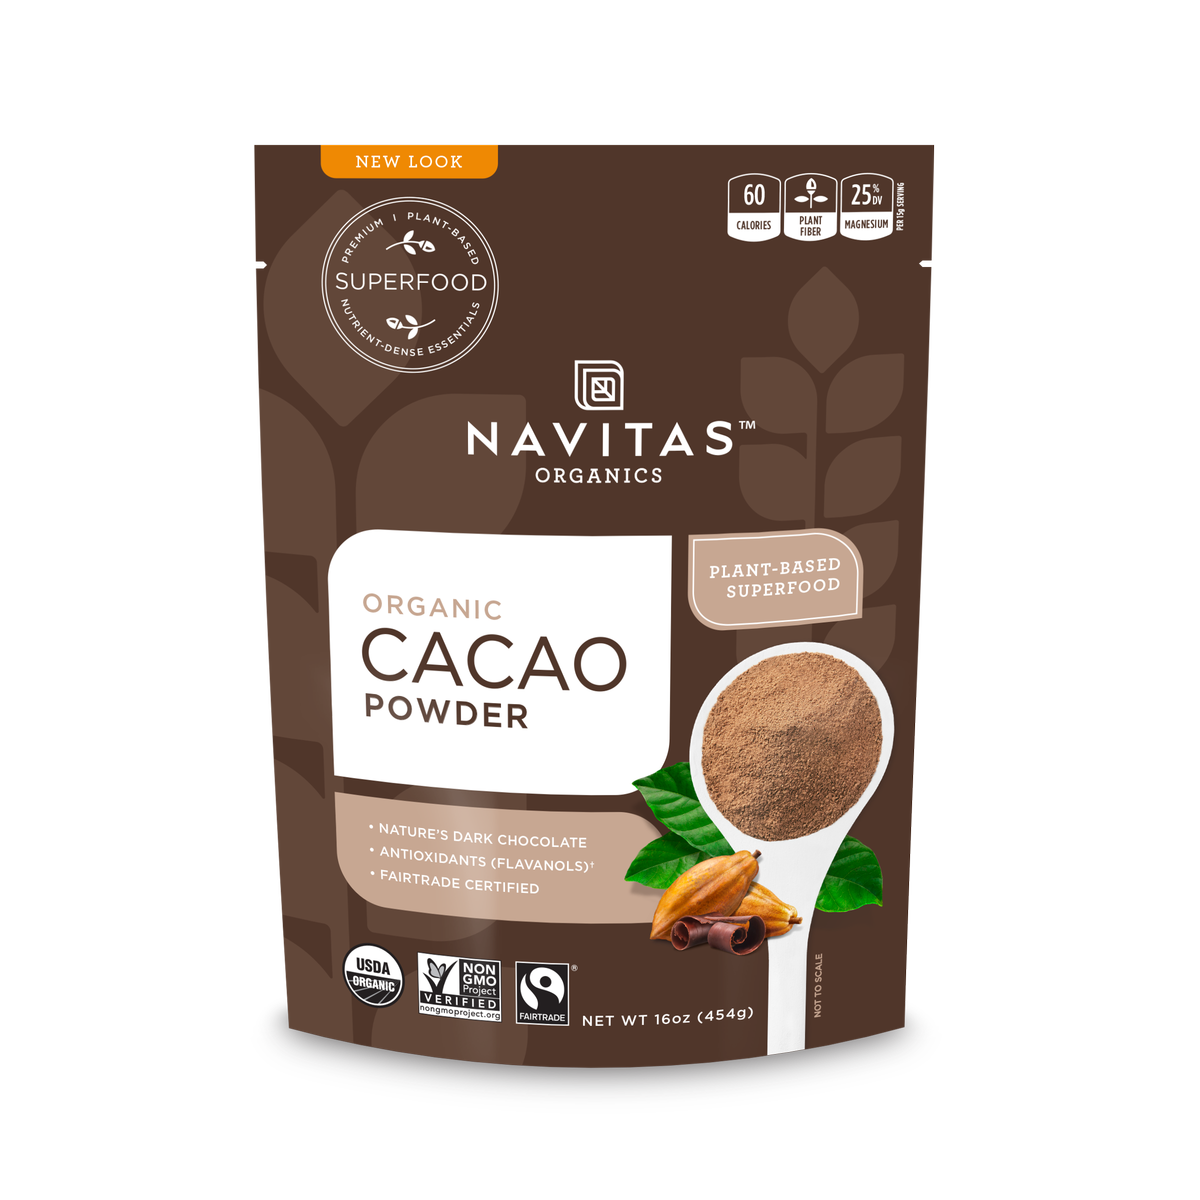 Navitas Organics Cacao Powder, 1.0 Lb, 30 Servings